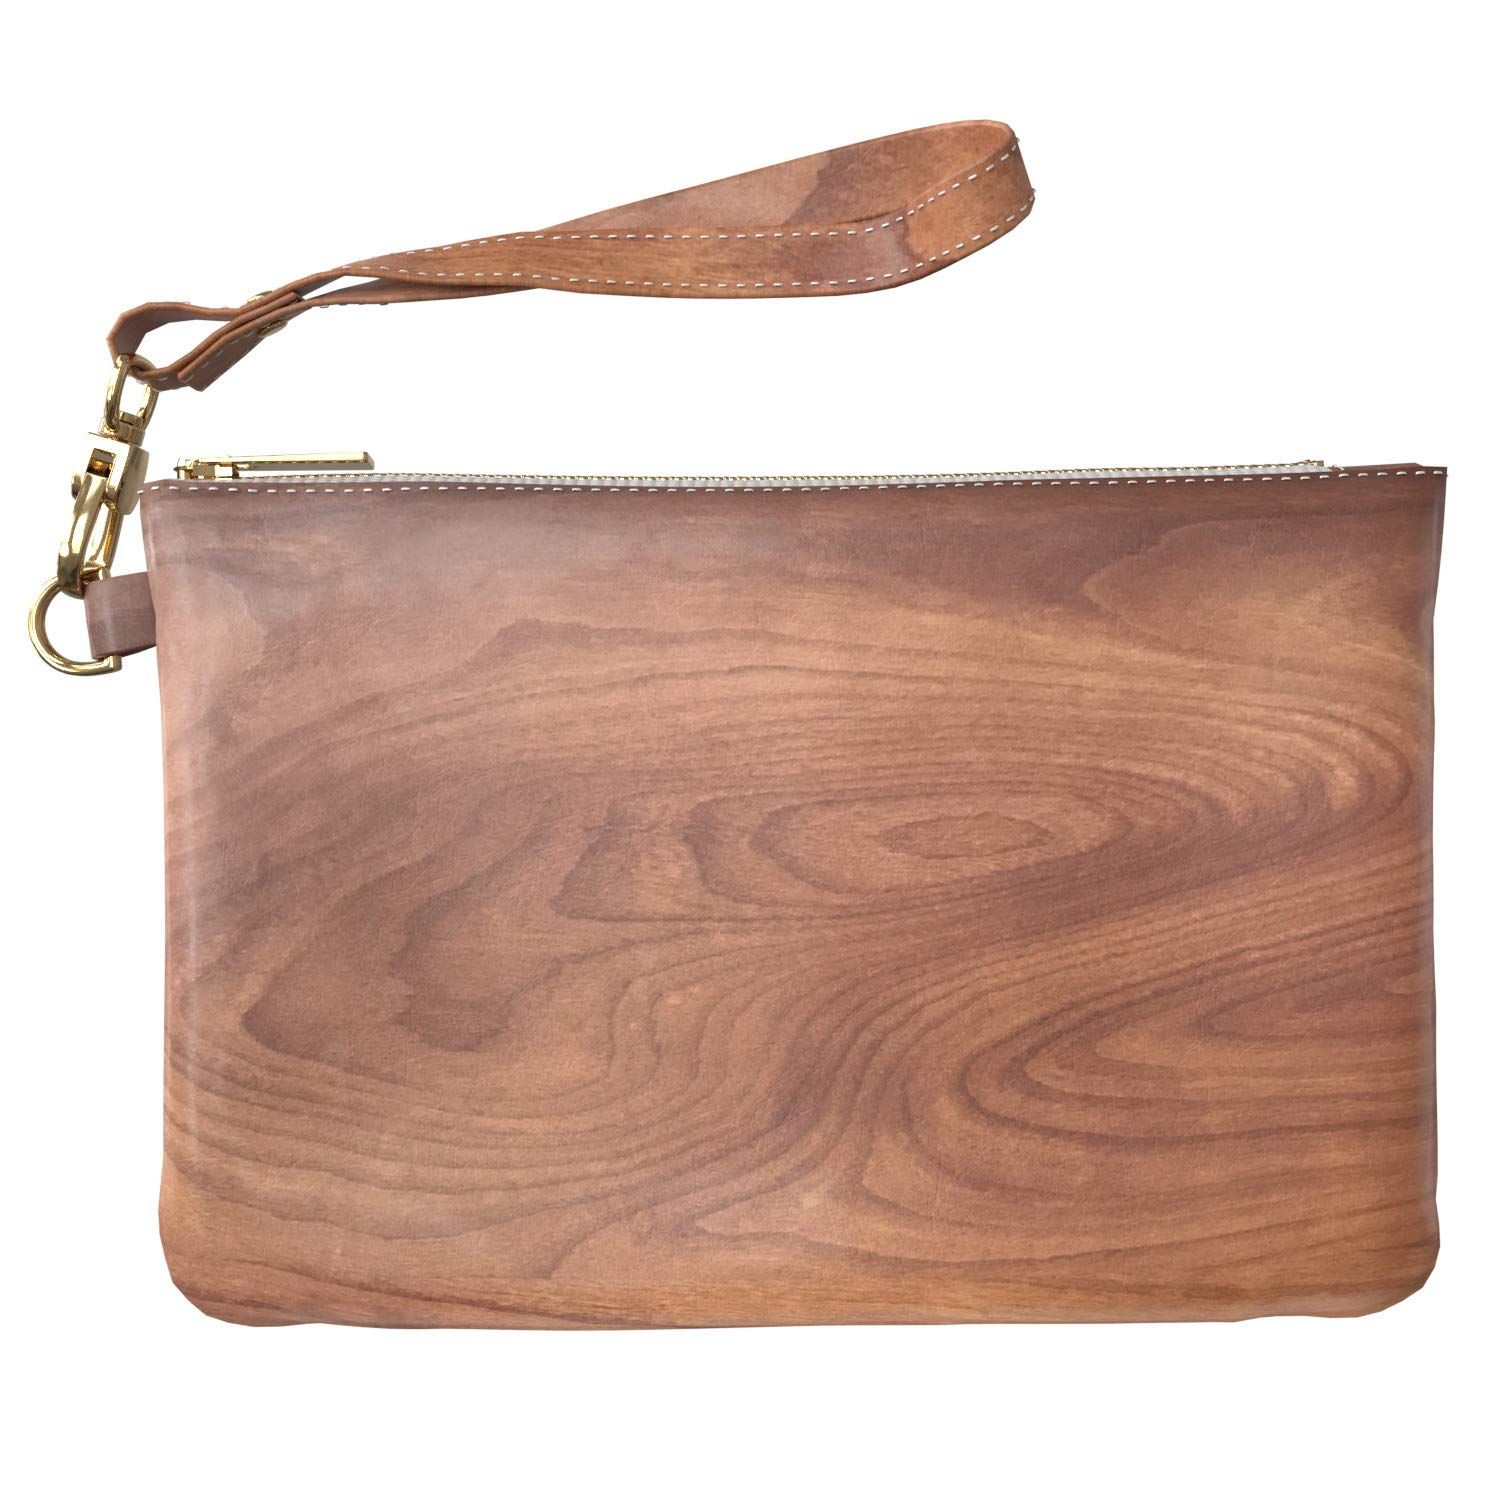 Cavka Makeup Bag 9.5 x 6 inch Texture Walnut Look Portable Organizer Design Print PU Leather Toiletry Zipper Travel Case Especial New Cosmetic Wood Strap Accessories Purse Pouch Luxury Storage Solid